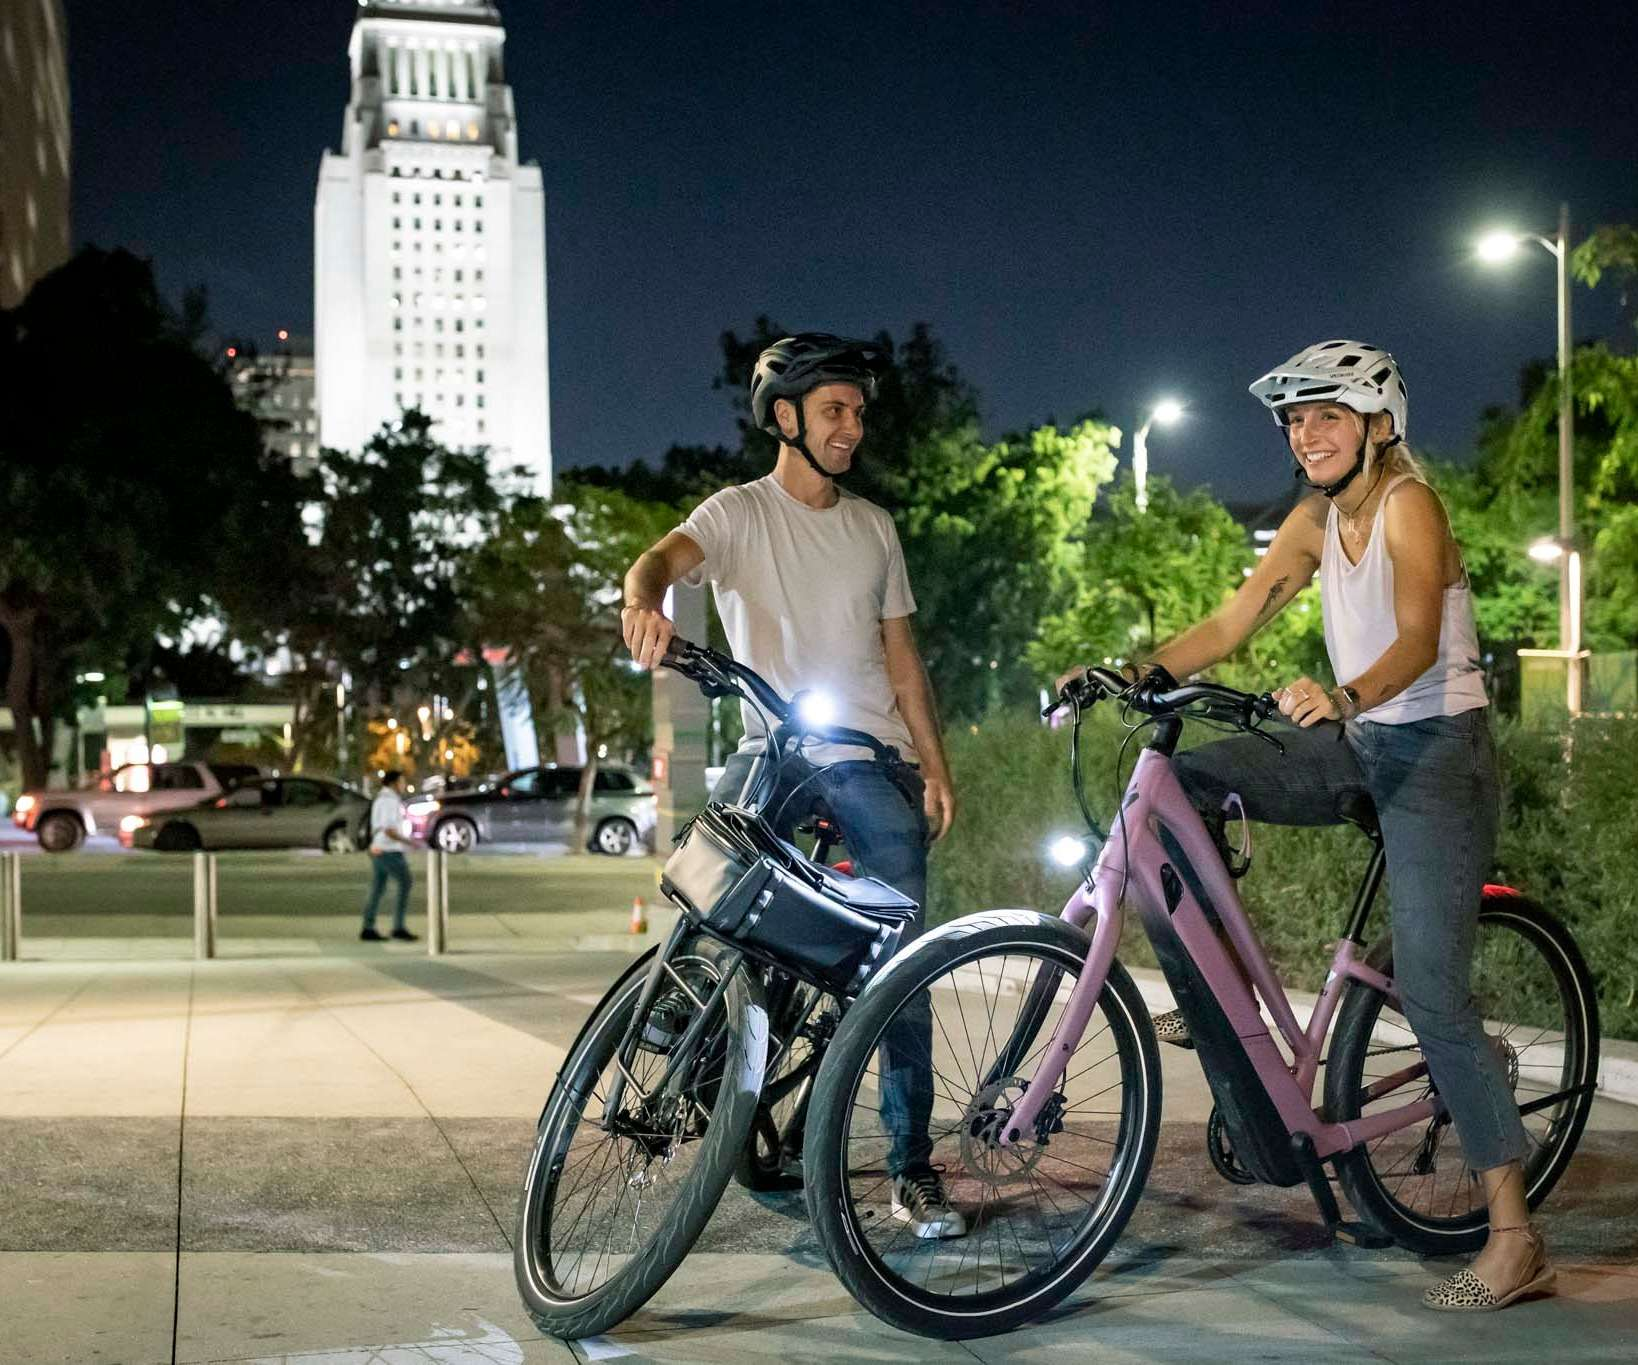 couple on eBikes at night